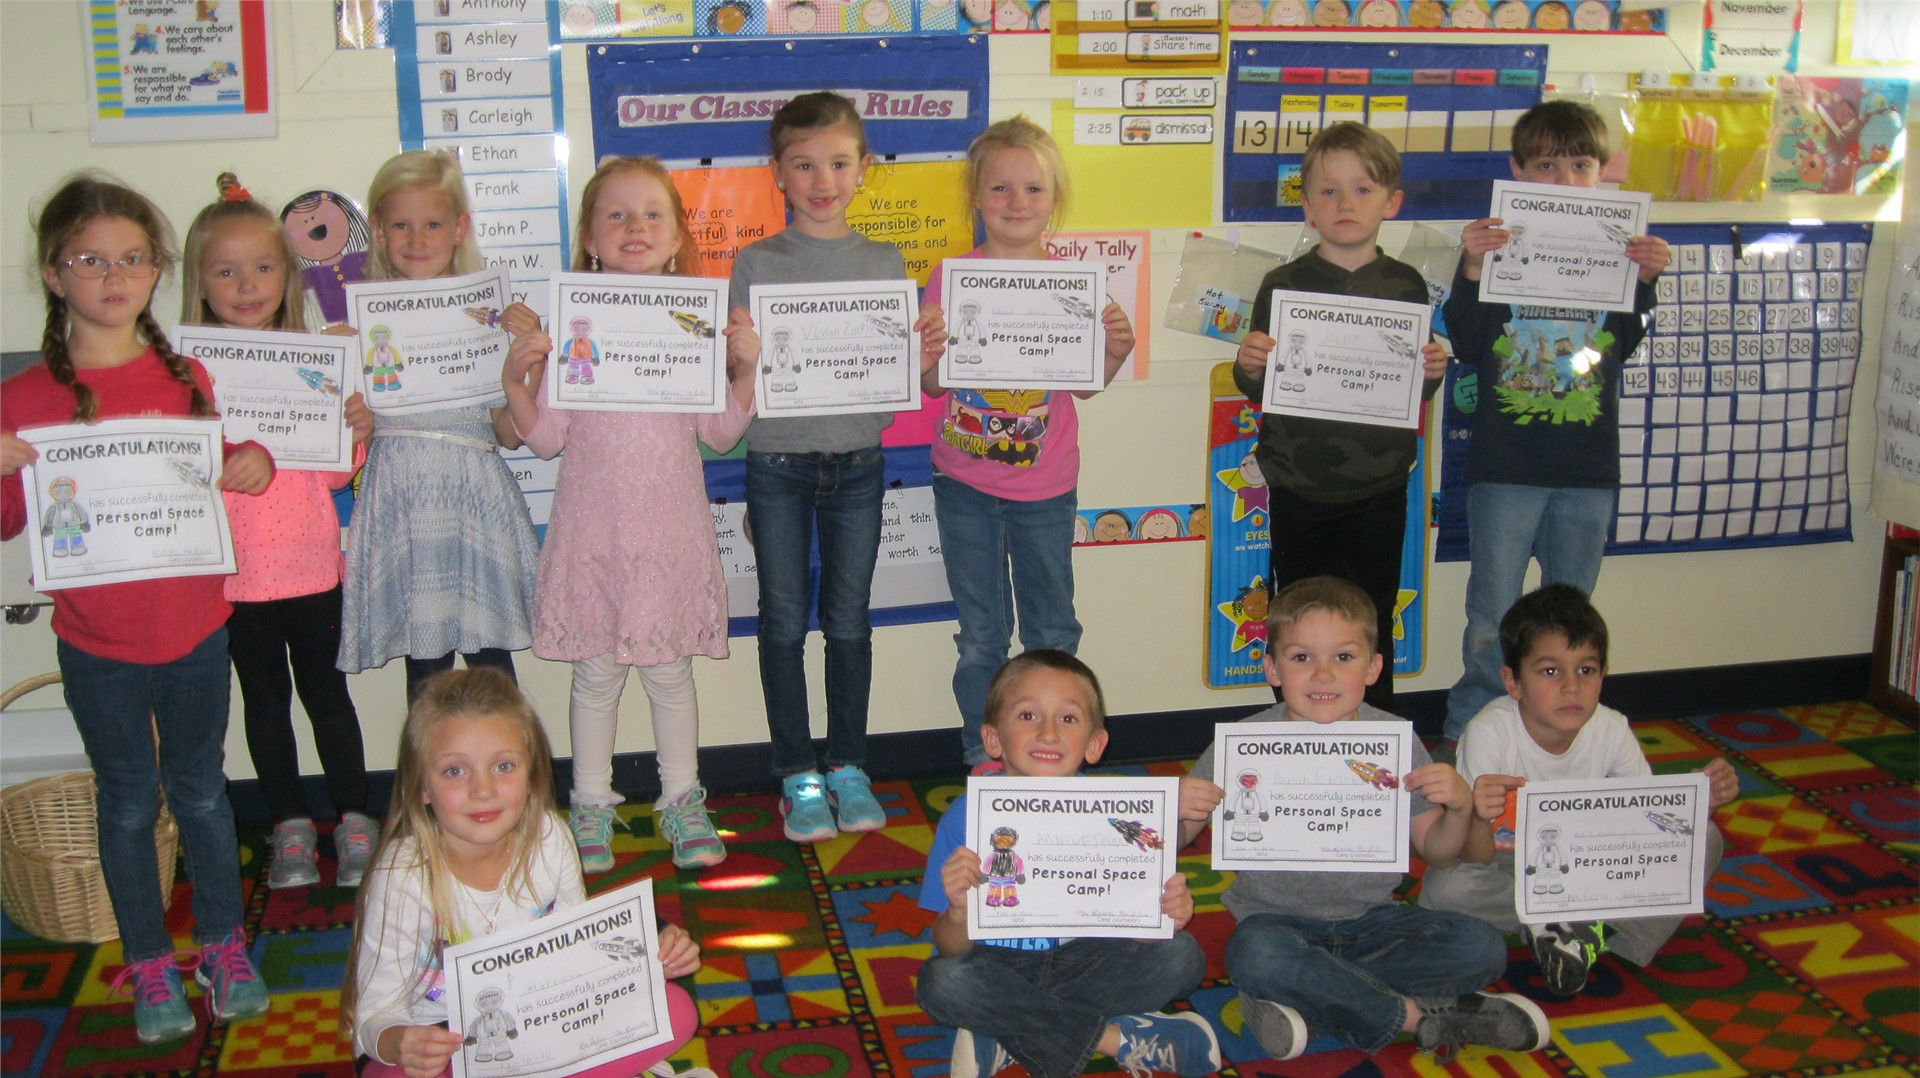 Personal Space Camp Graduates!